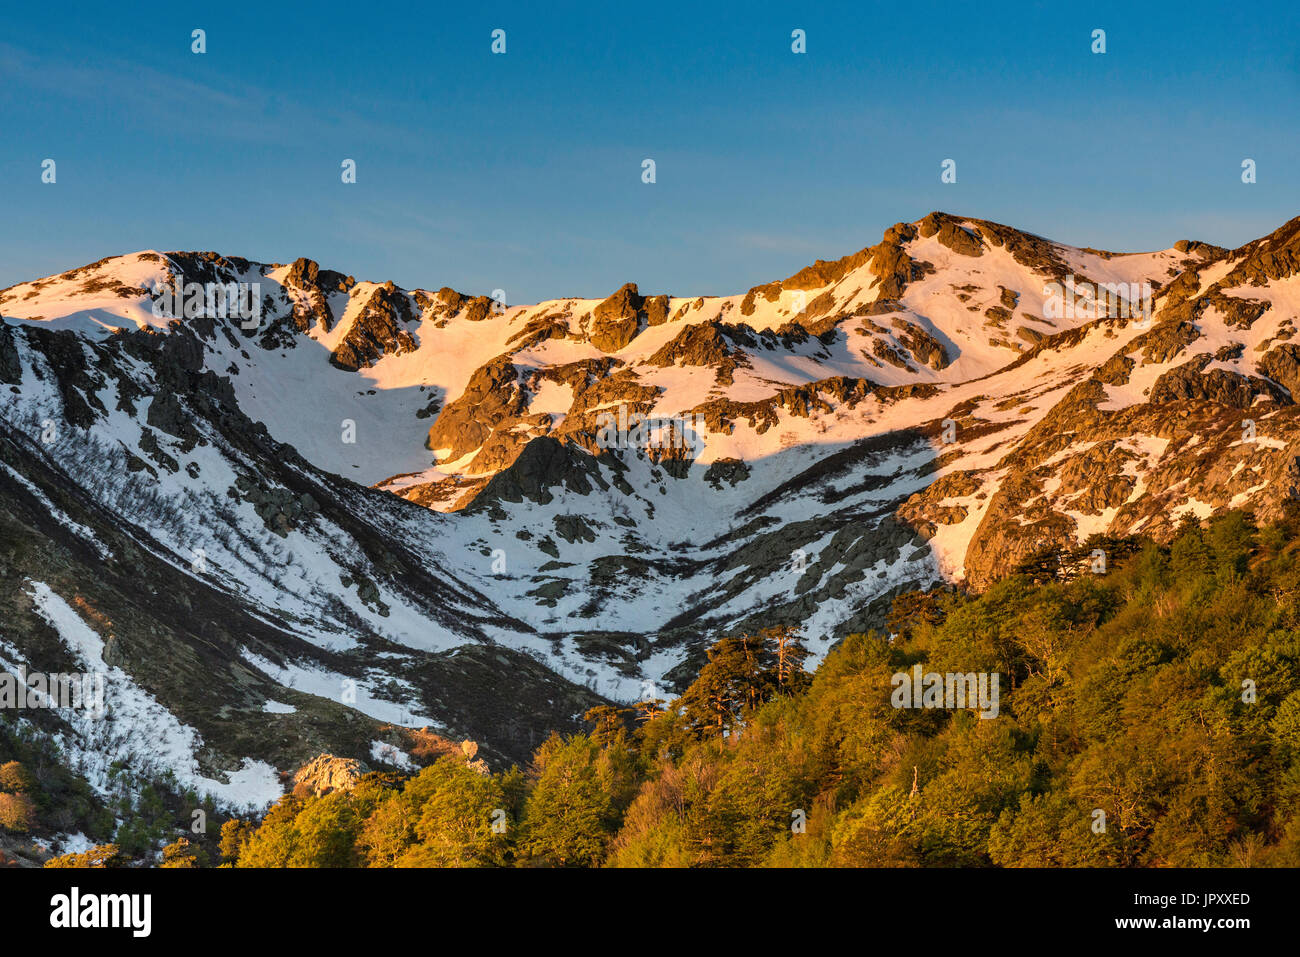 Monte Renoso massif, at sunrise, GR 20 trail near Capannelle mountain hut, Haute-Corse department, Corsica, France - Stock Image